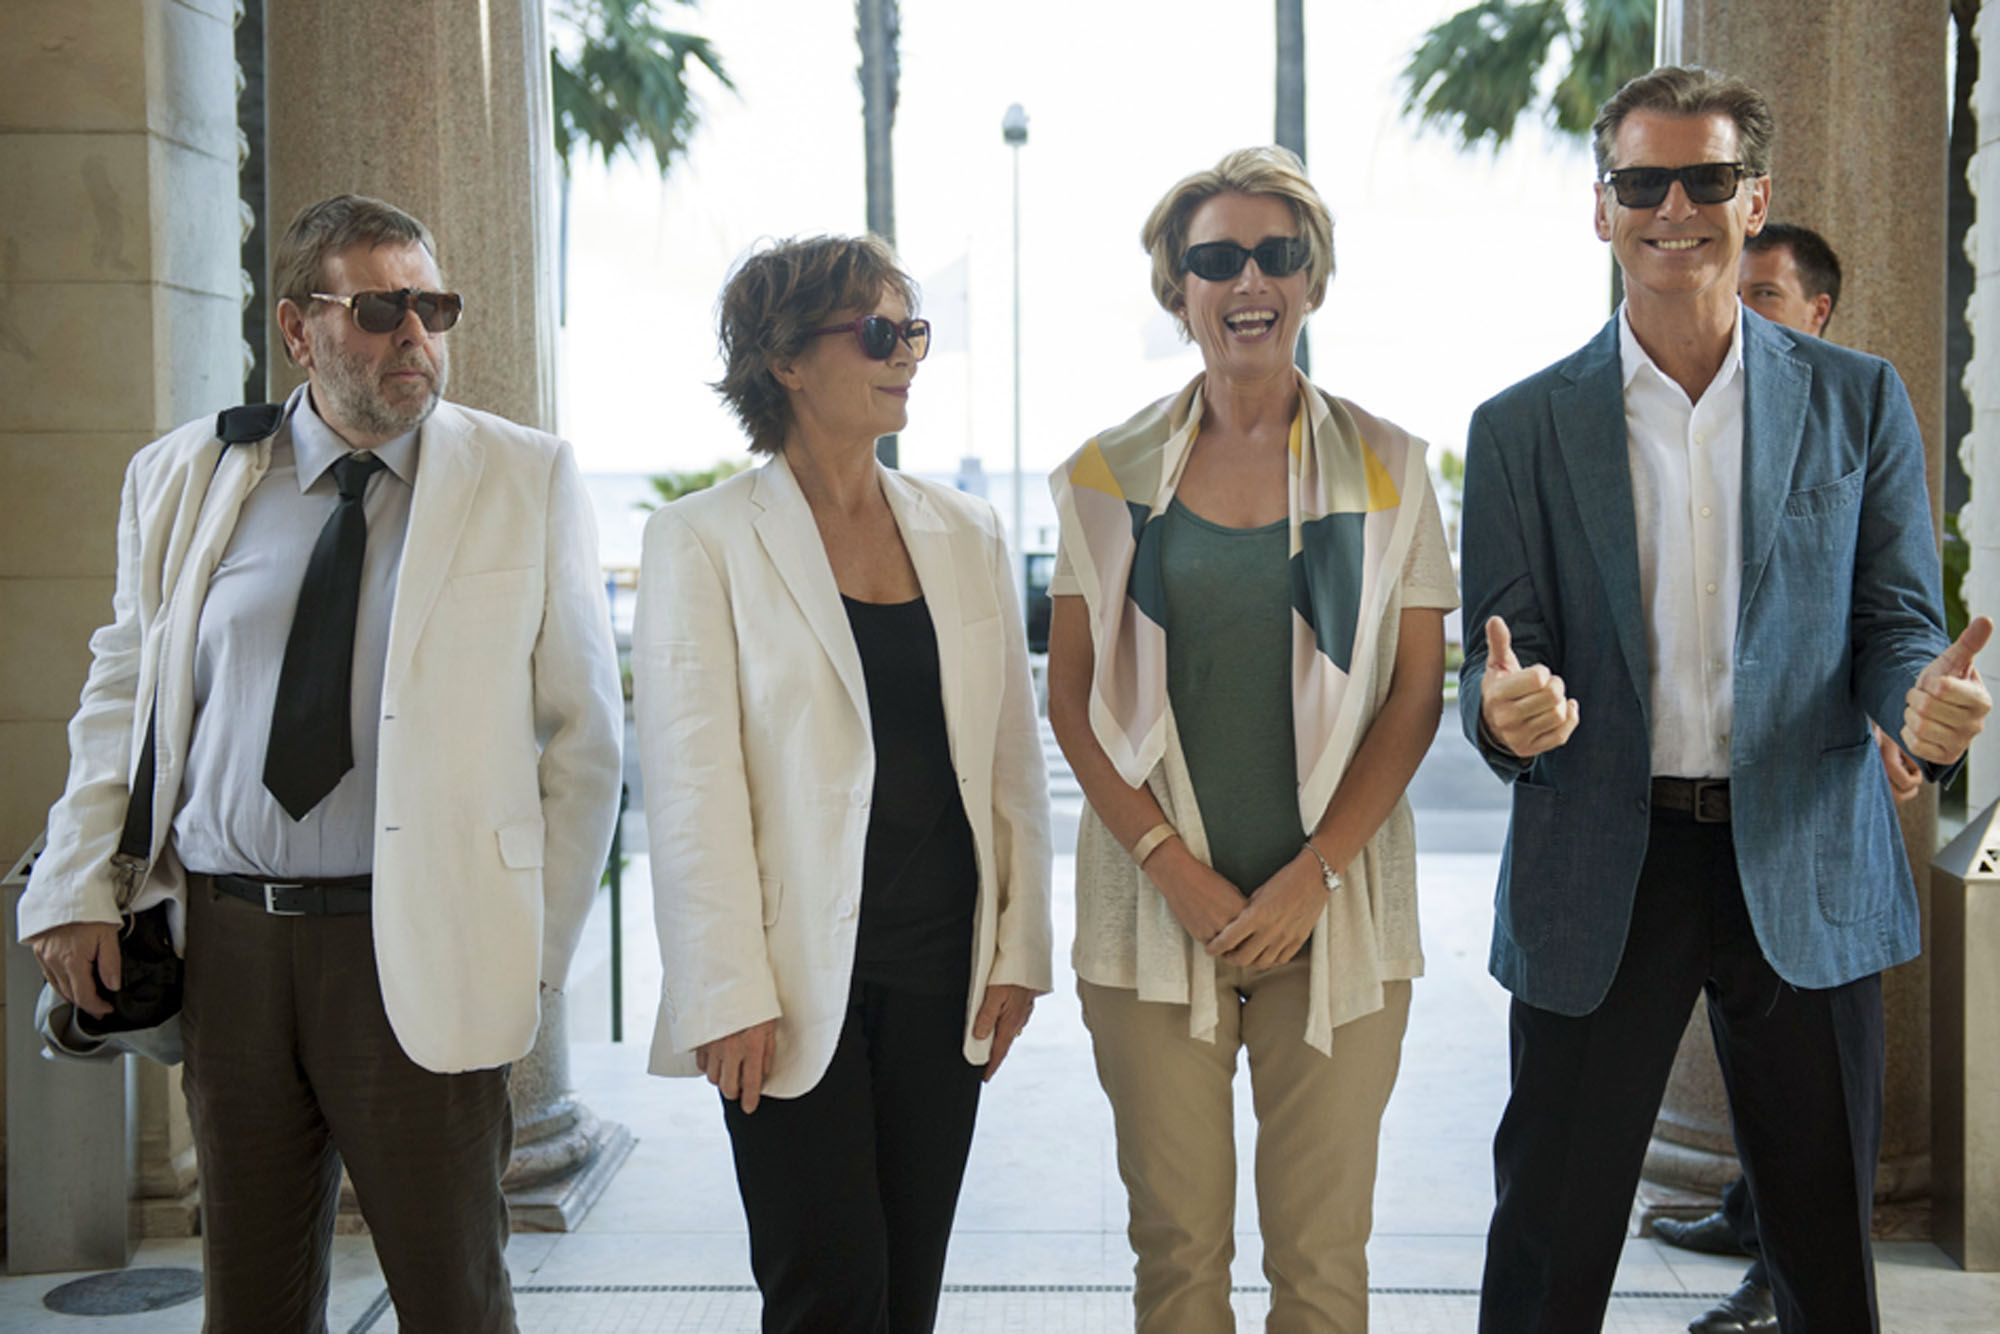 Pierce Brosnan, Emma Thompson, Timothy Spall and Celia Imrie in The Love Punch